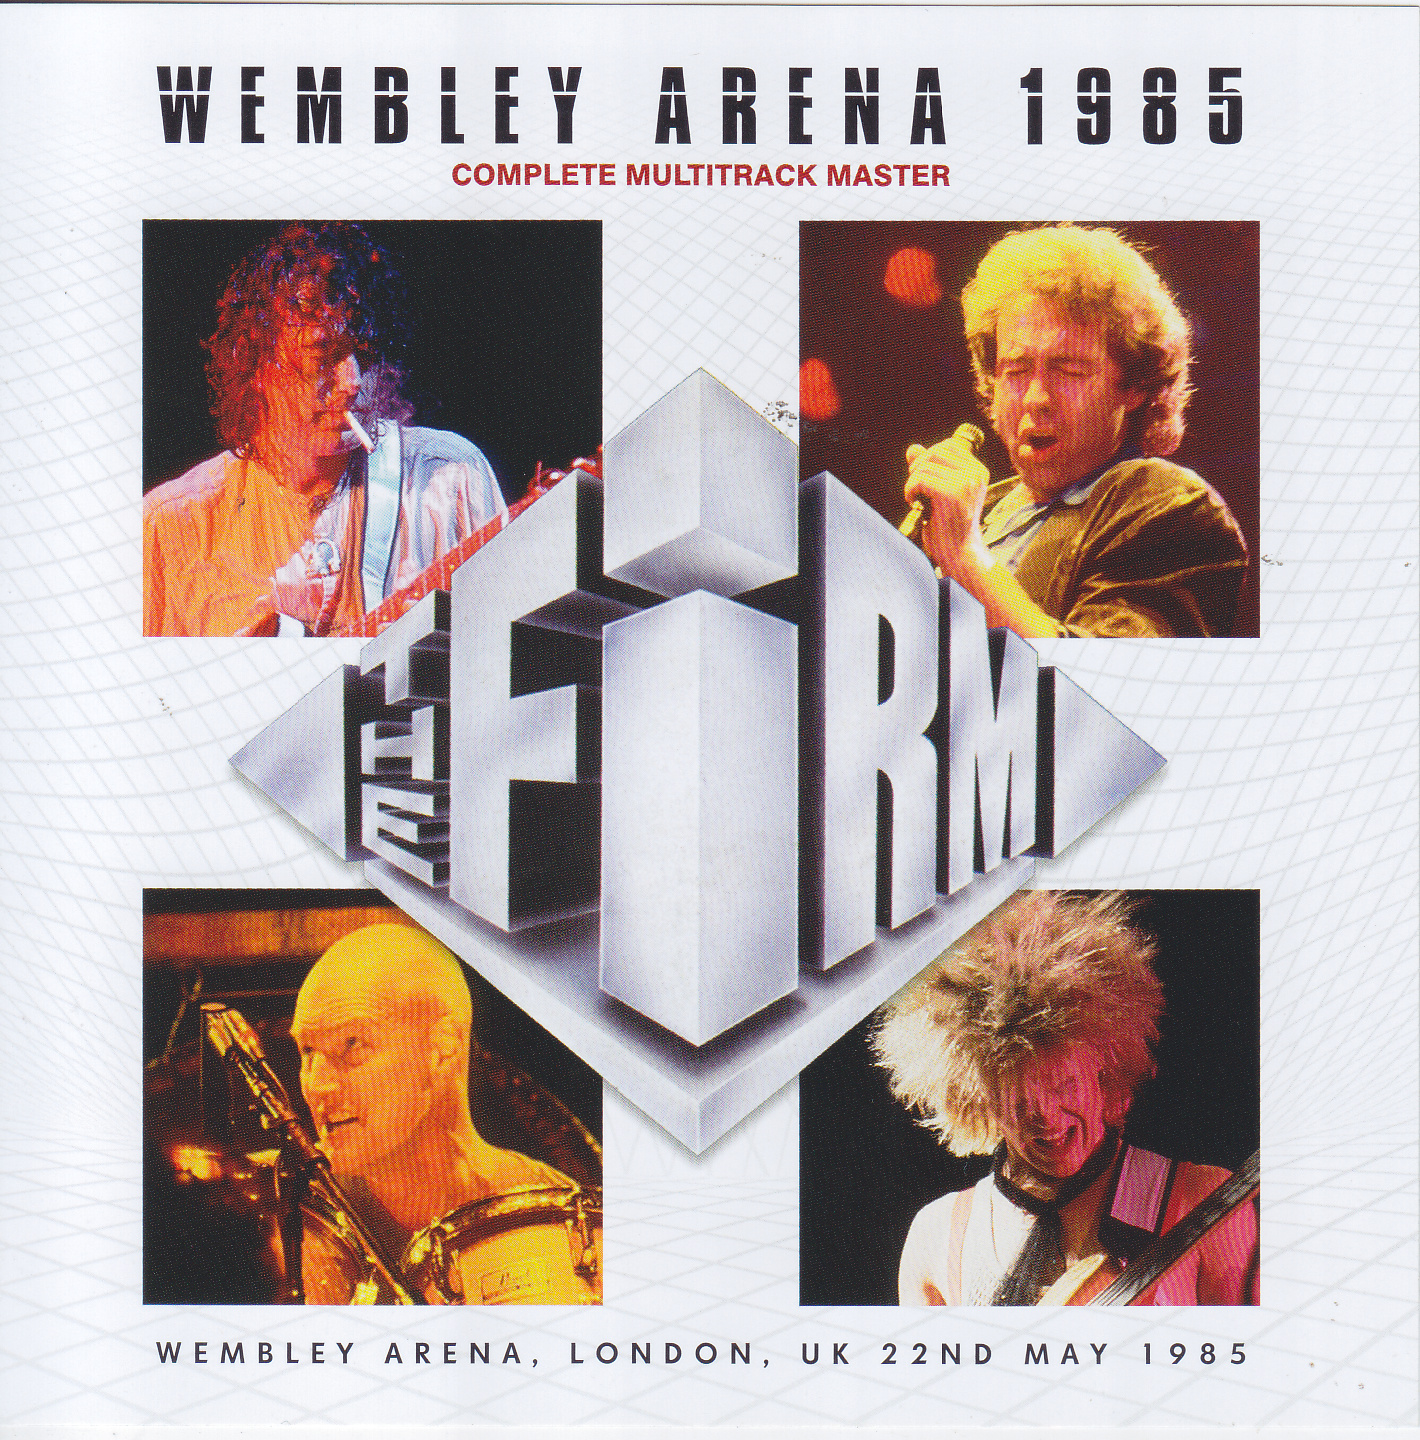 RELIQUARY: Firm, The [1985 05 22] Wembley Arena 1985 Complete